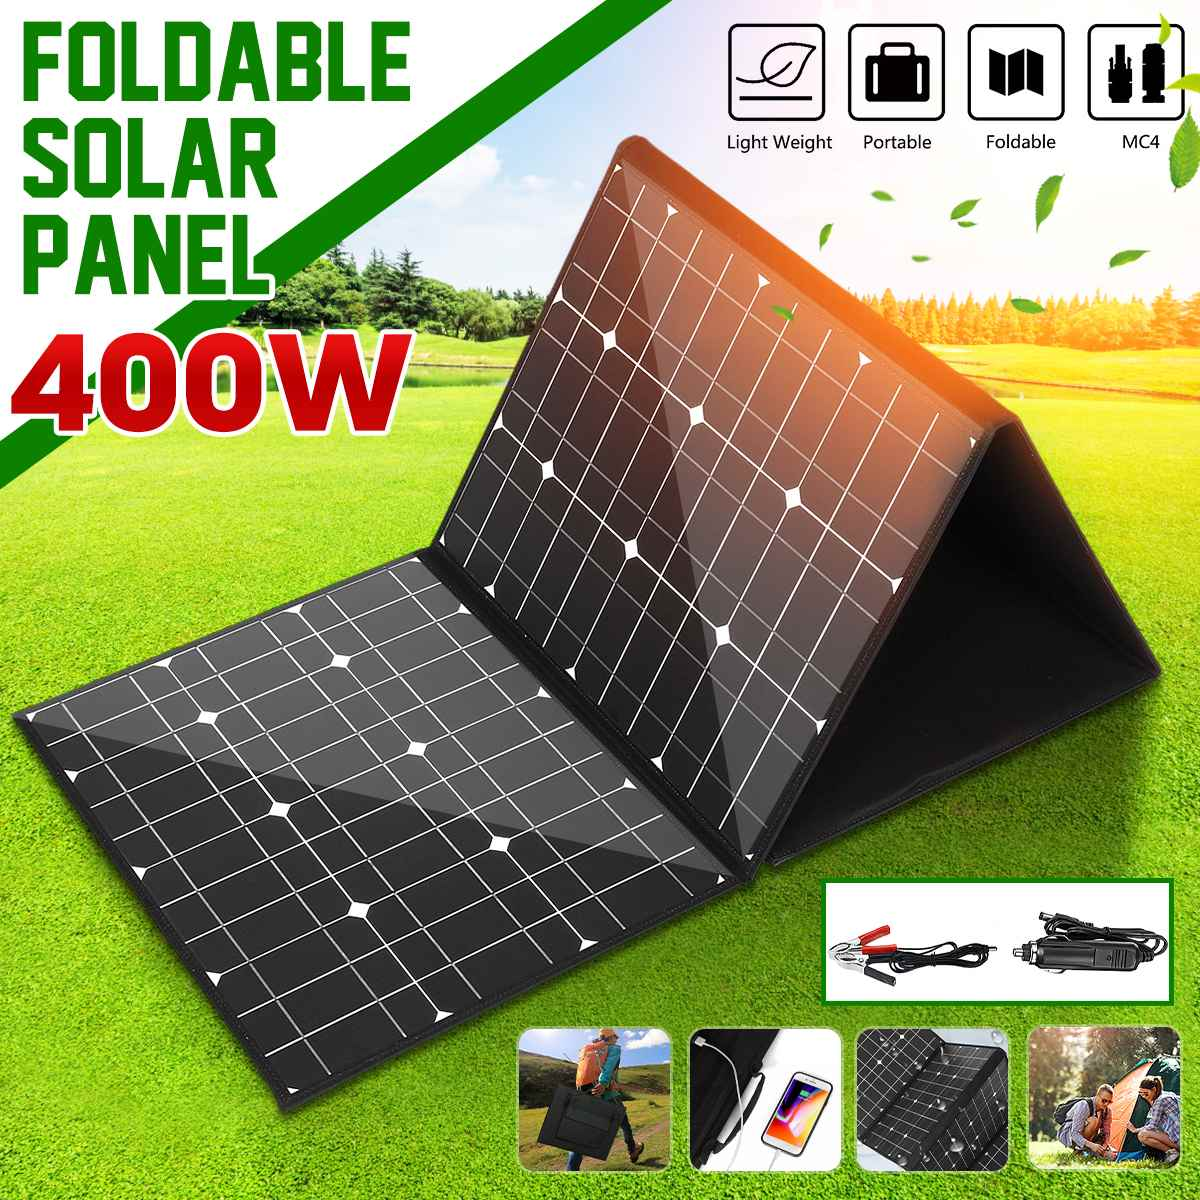 18V 400W Solar Panel Monocrystallinel Solar Cells Folding Package With 1.5m Cables +USB Interface DC Set For Outdoor Working